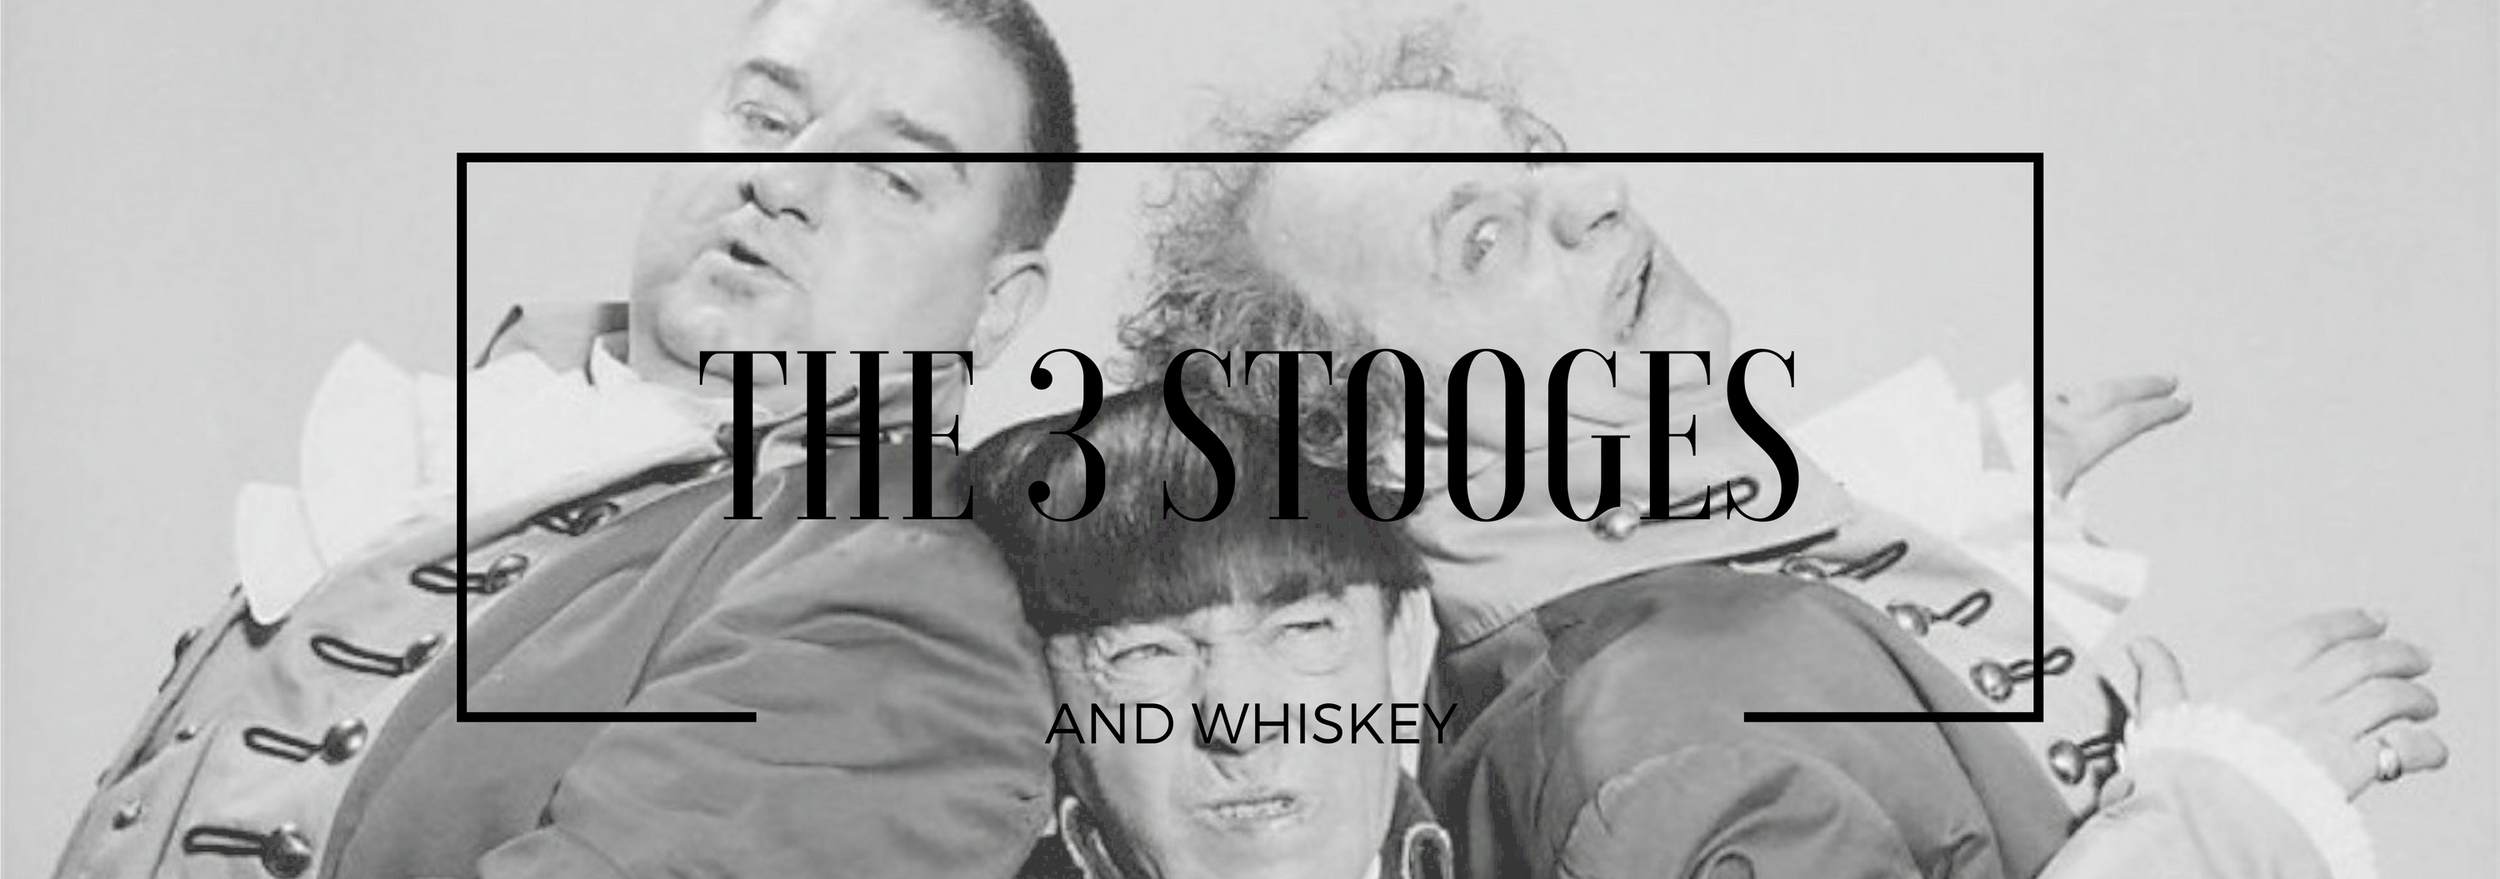 the-3-stooges-and-whiskey.png